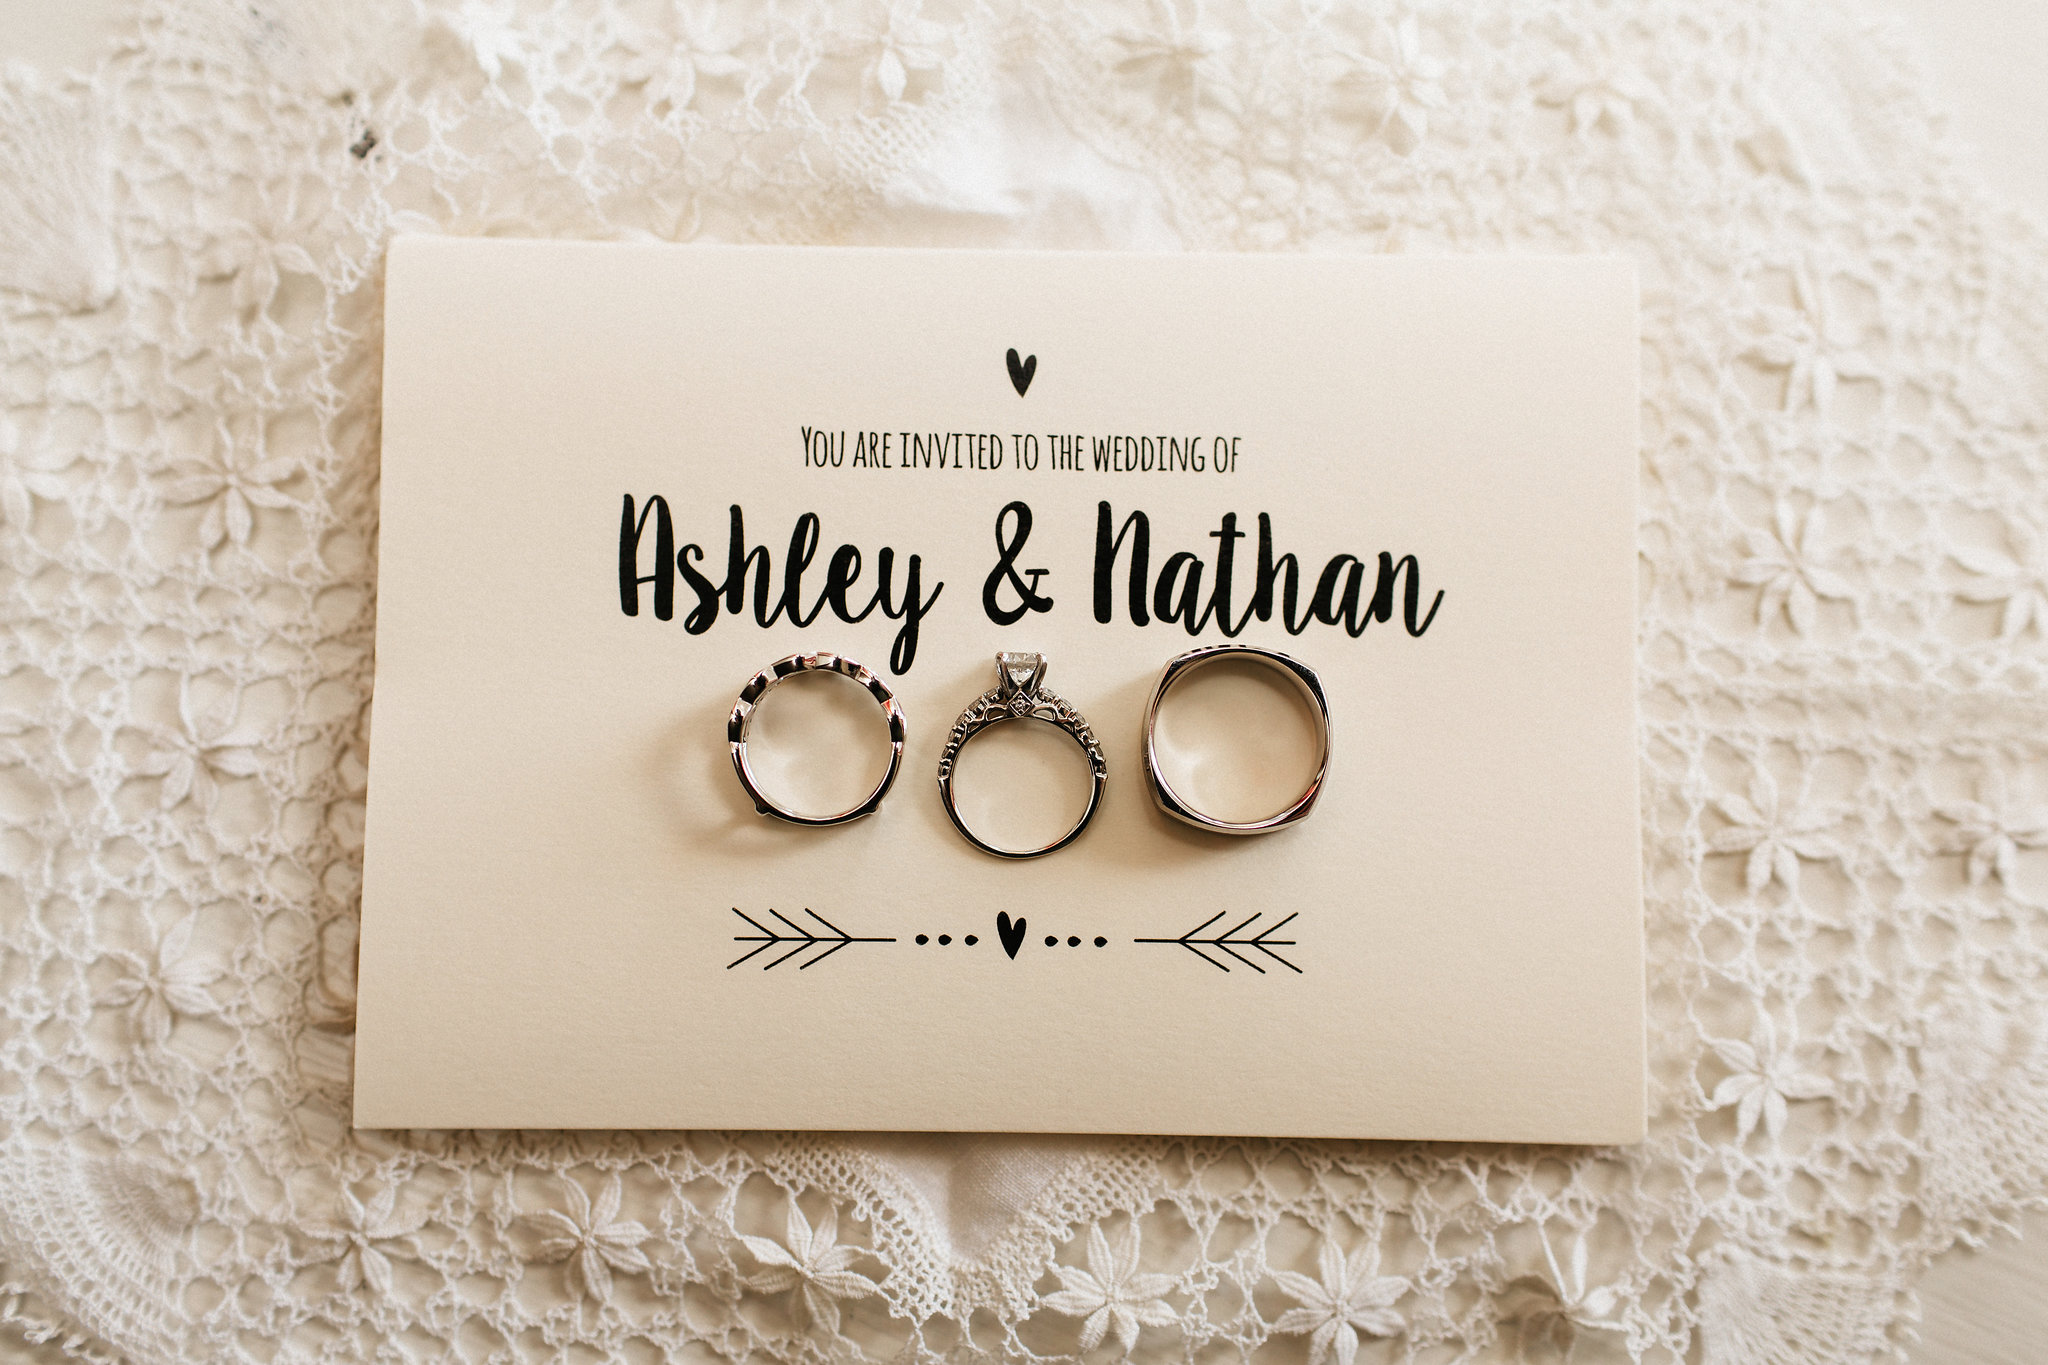 Ashley&NathanMarried2017-11-10at19.26.51PM110.jpg